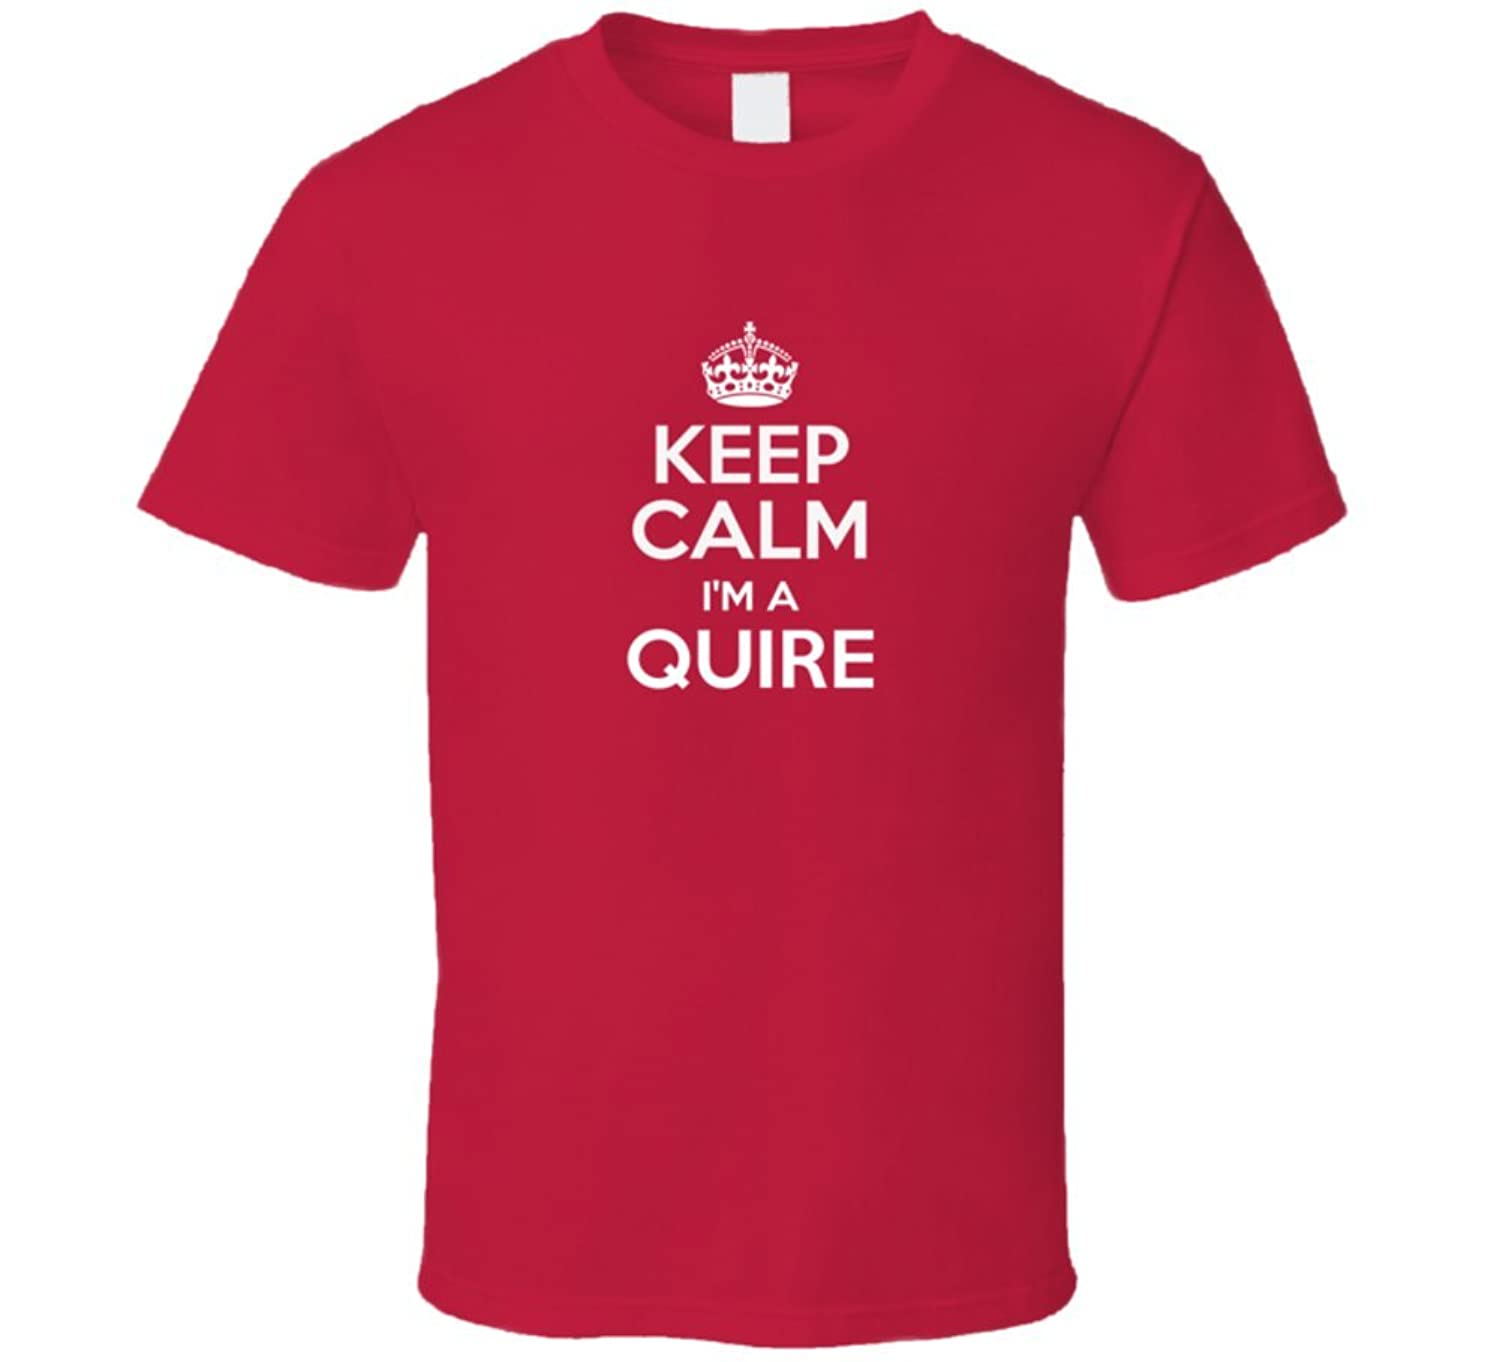 Quire Keep Calm Parody Family Tee T Shirt фляга s quire камуфляж 270 мл